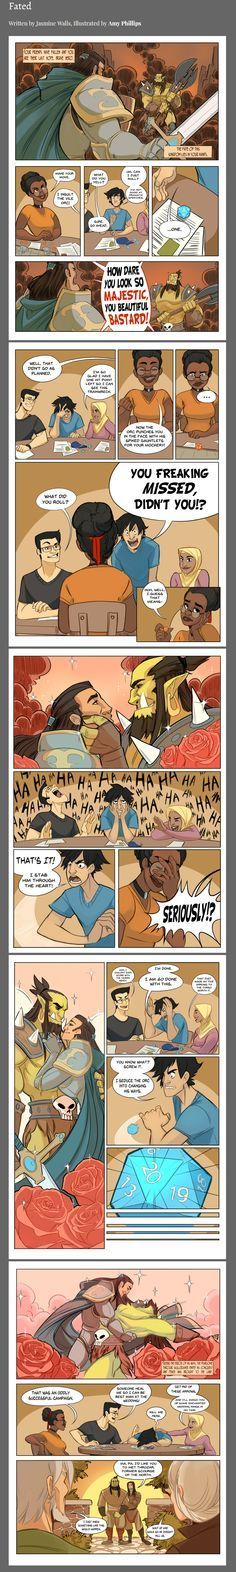 a botched D&D attack   Fated by Jasmine Walls, illustrated by Amy Phillips I now ship this